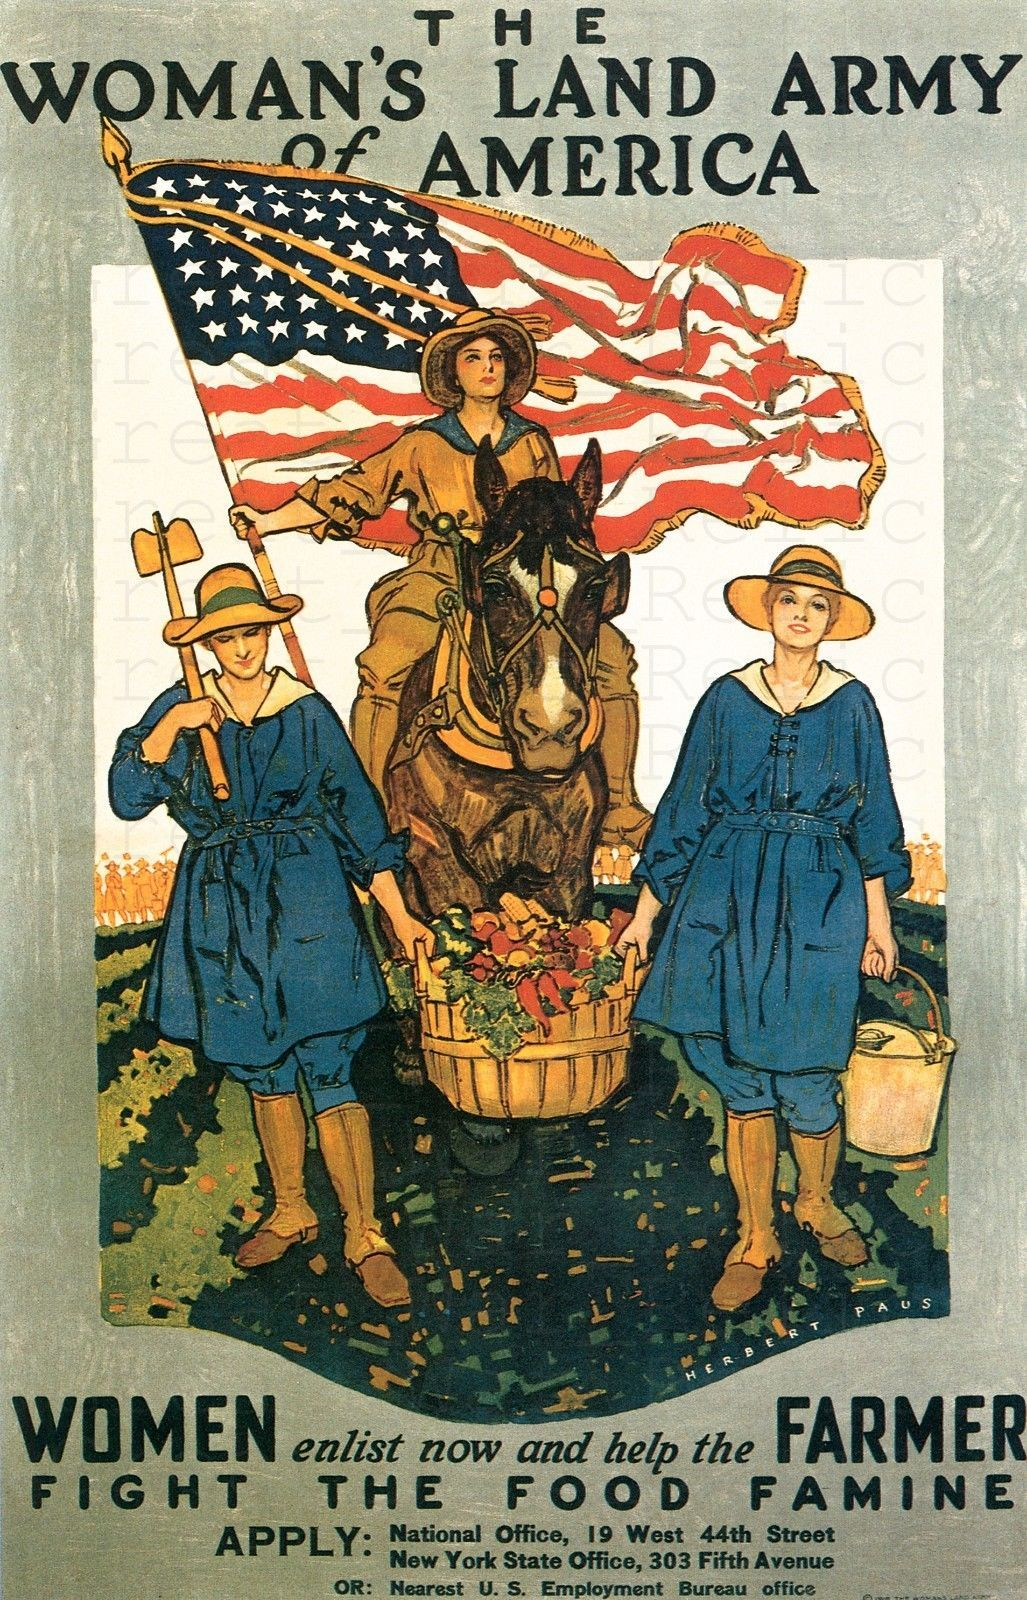 Details About American Propaganda Poster Ww1 Us Army Militaria Wwi Collectibles War 1917 Women S Land Army Ww1 Propaganda Posters Wwii Posters